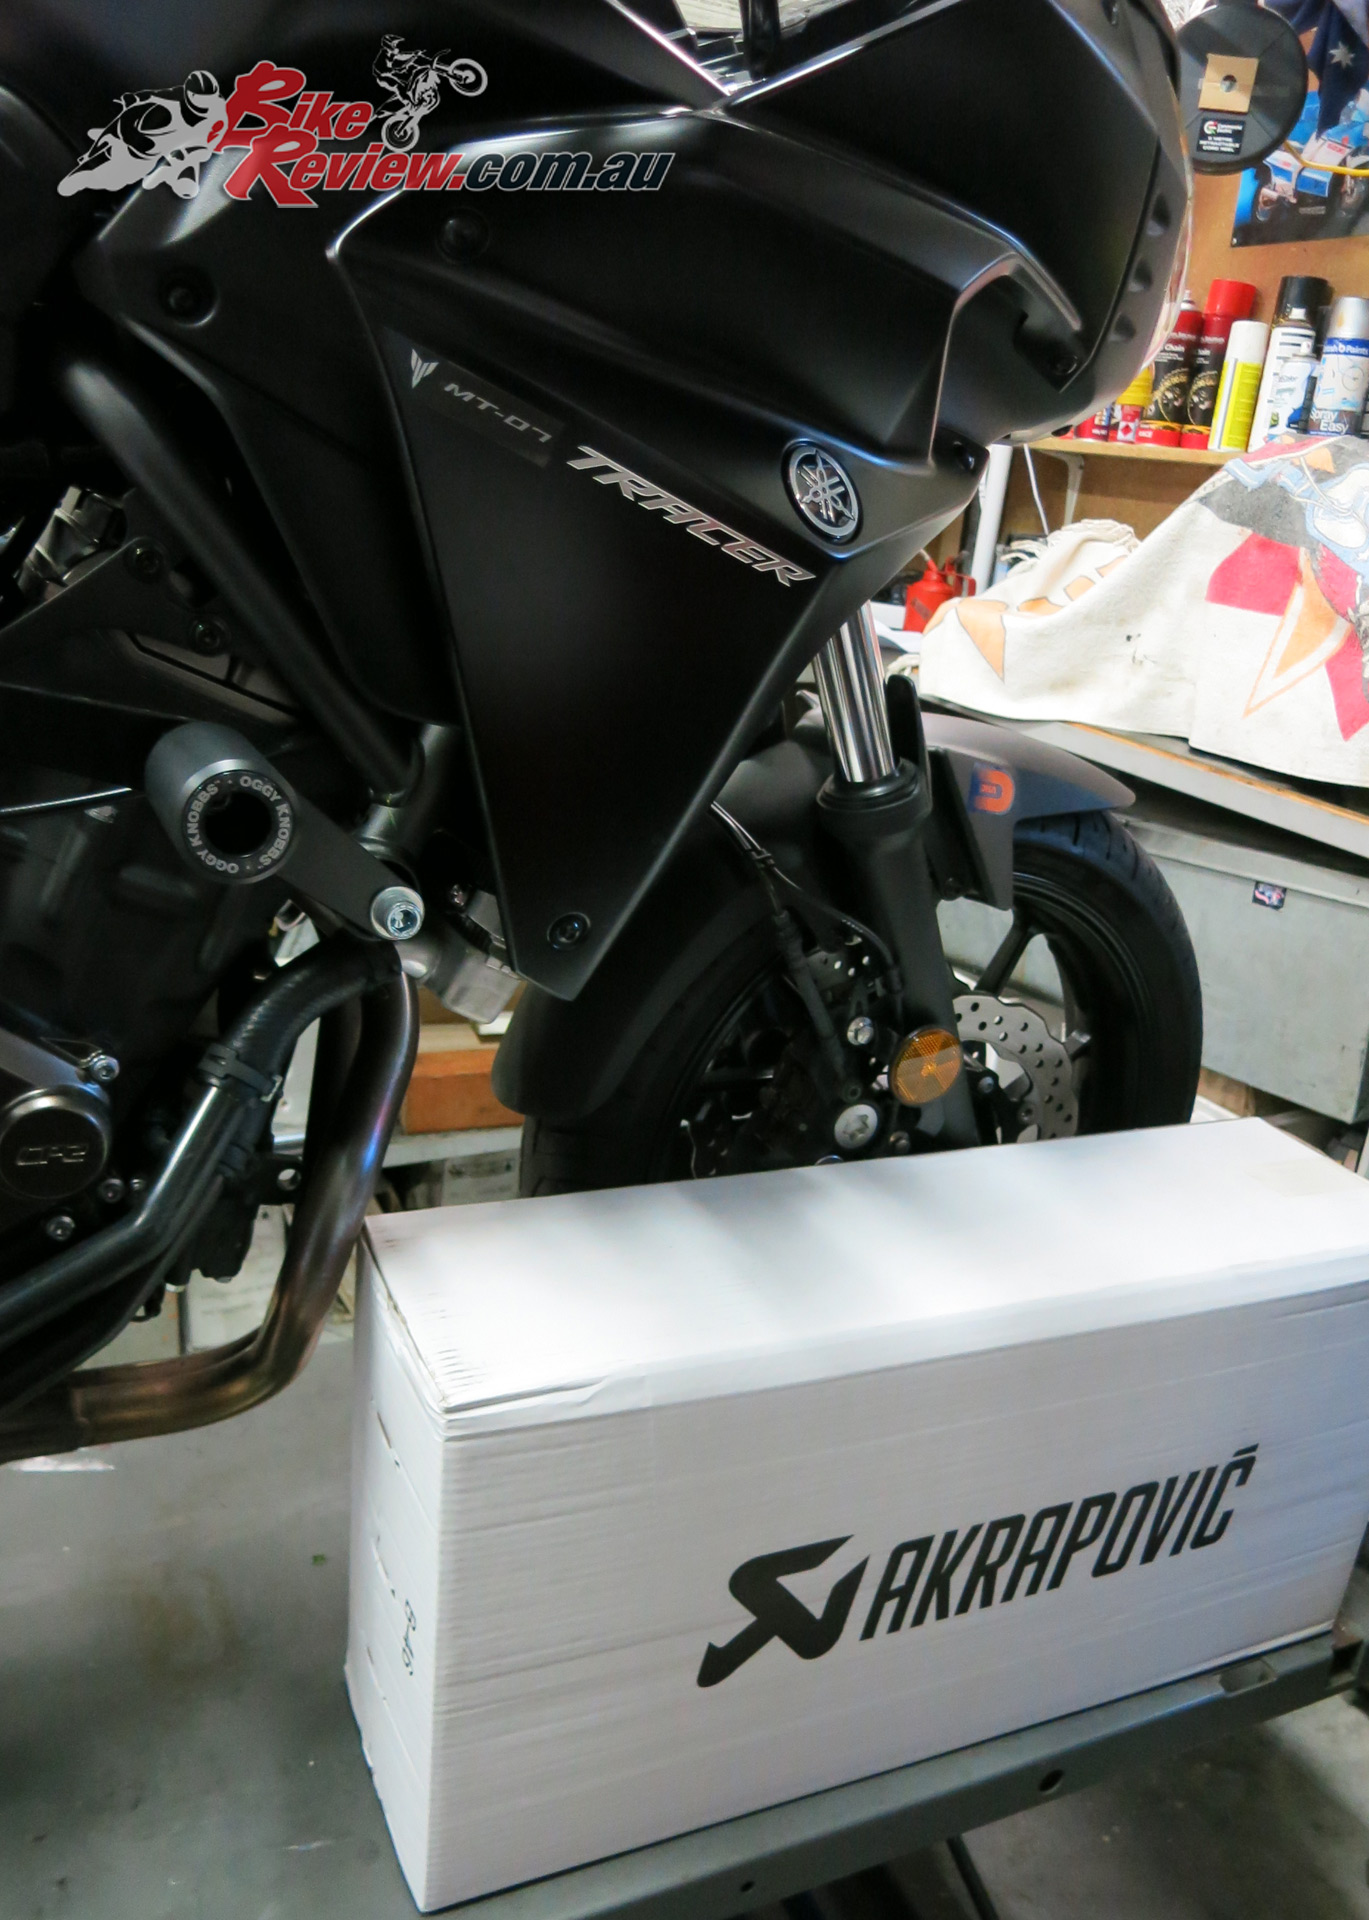 The excitement of a big box of motorcycling goodies!